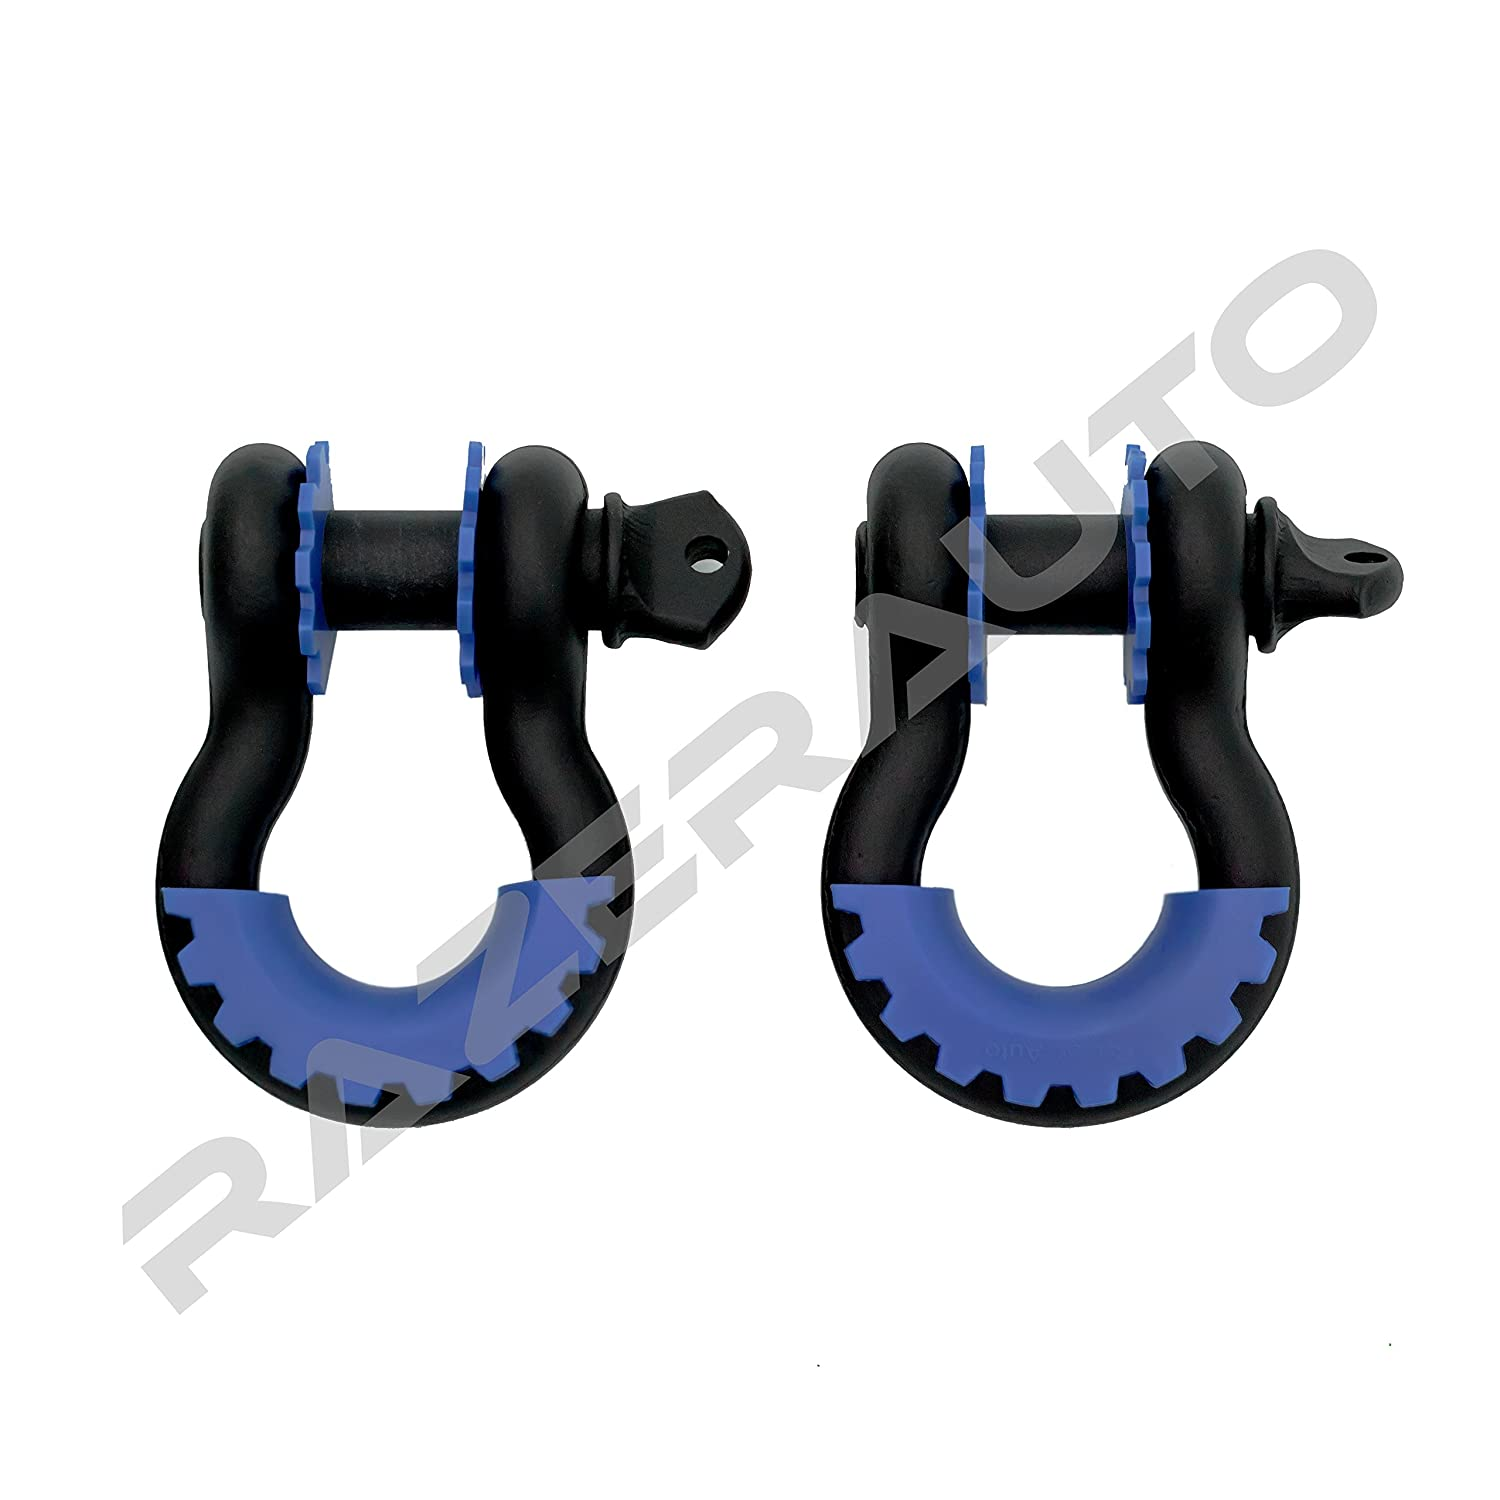 Razer Auto 1 Pair of Black D-Rings Shackle with Blue Isolator /& Washers Gear Design Rattling Protection Cover Black//Blue